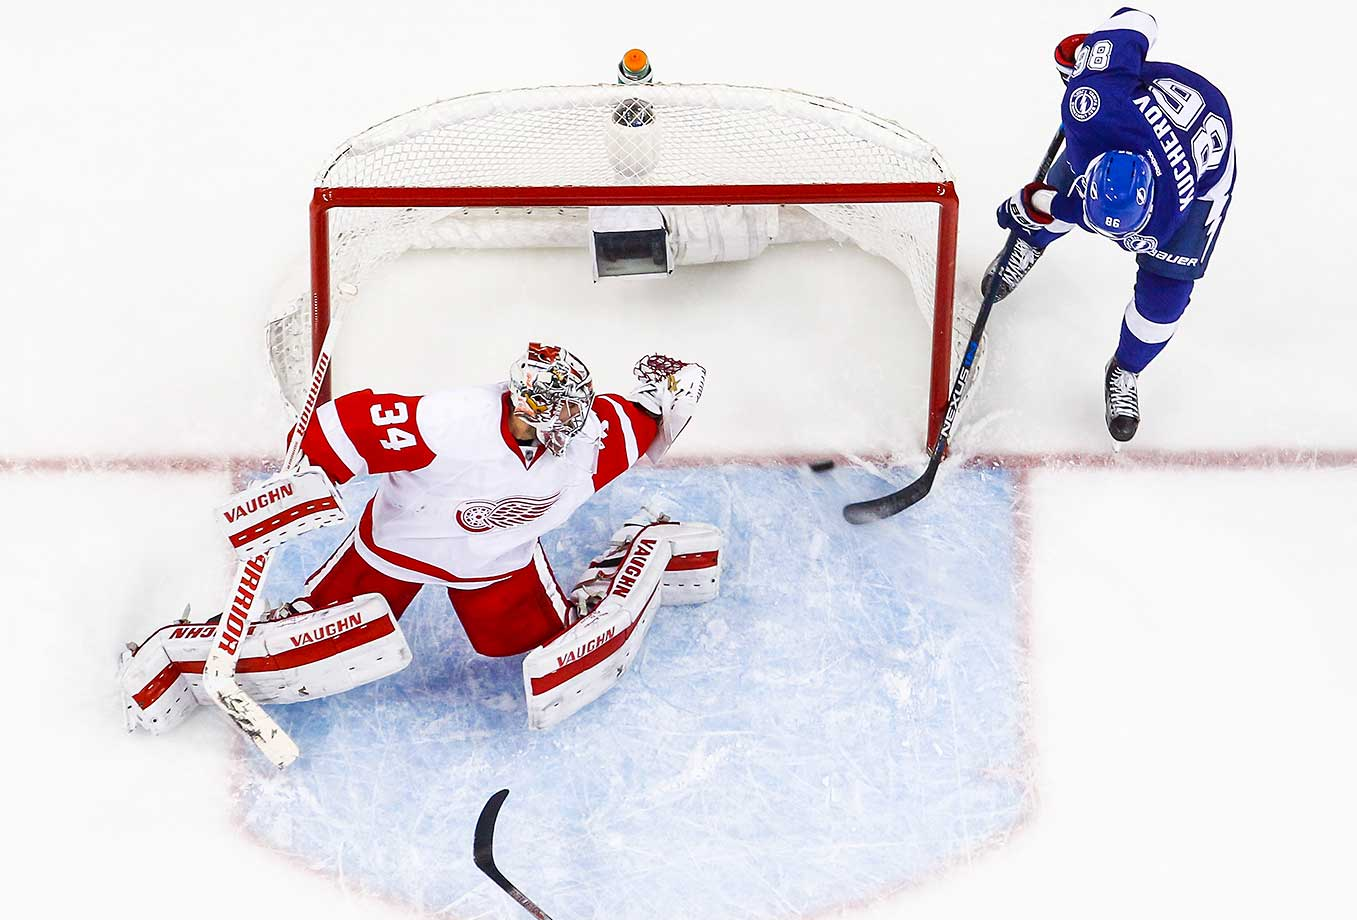 Goalie Petr Mrazek stretches but can't make the save as Nikita Kucherov of the Tampa Bay Lightning scores.